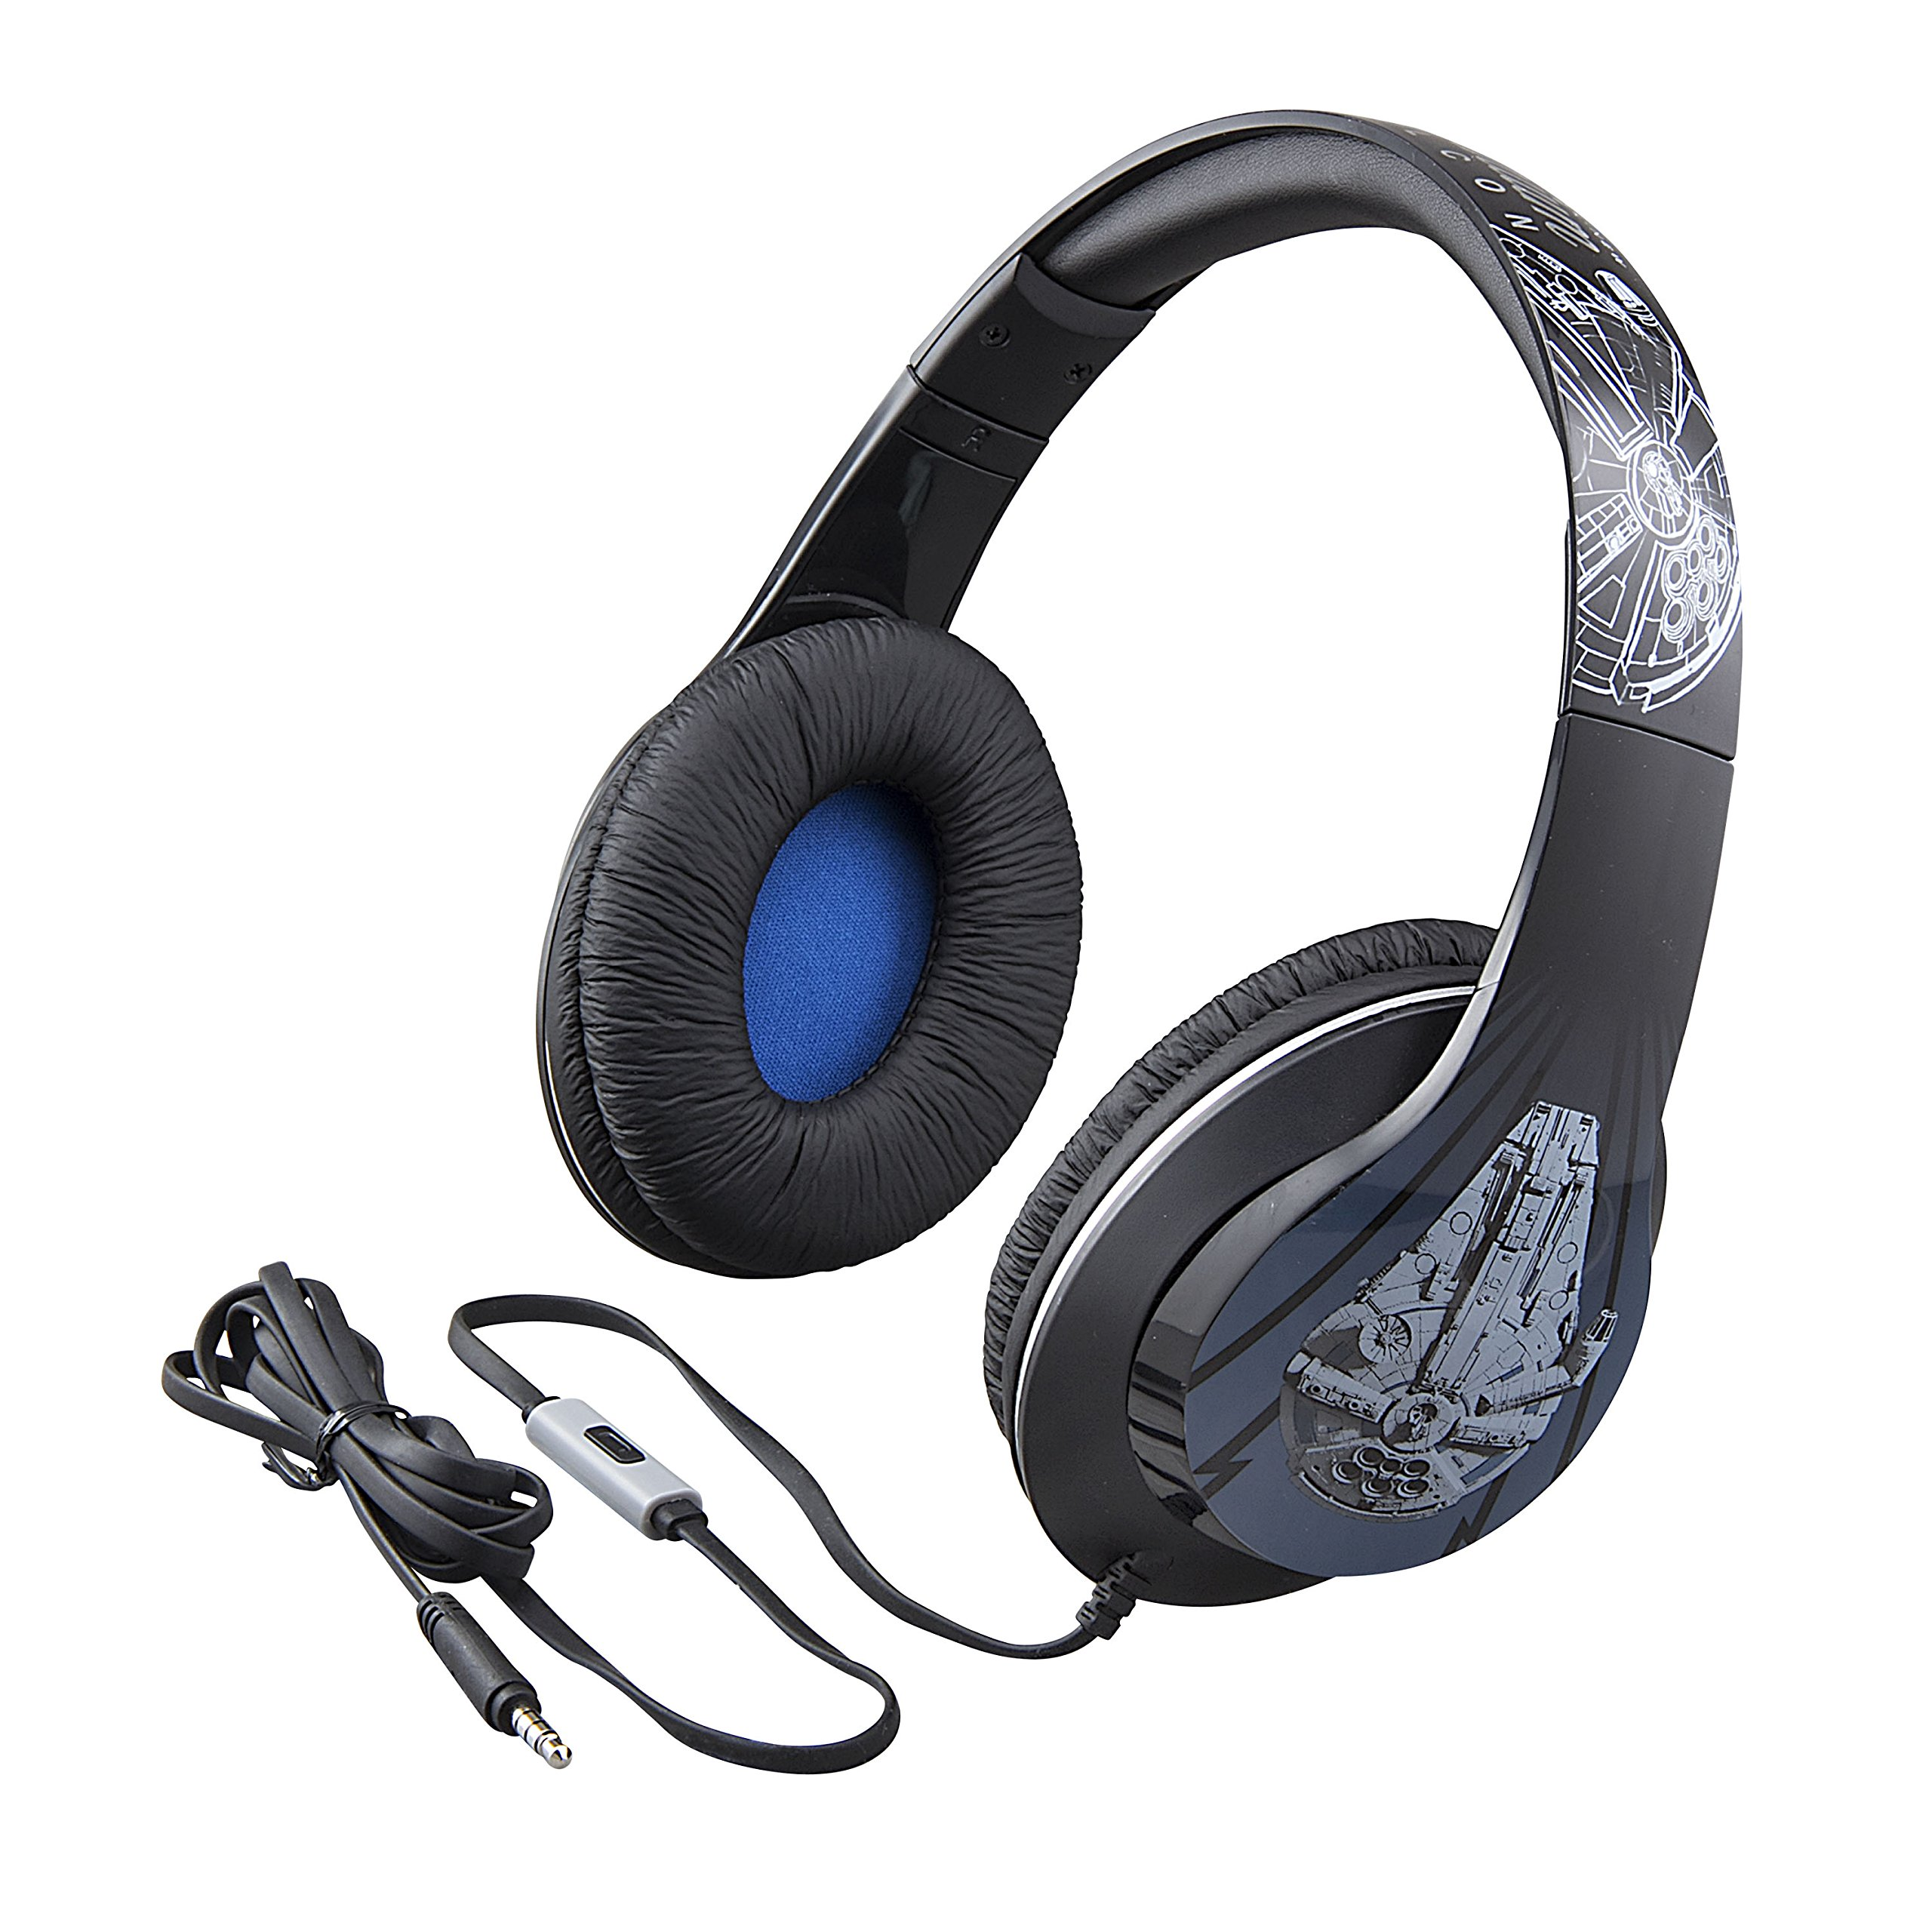 Auriculares Chicos  Mic  Star Wars [7BHRWKBZ]